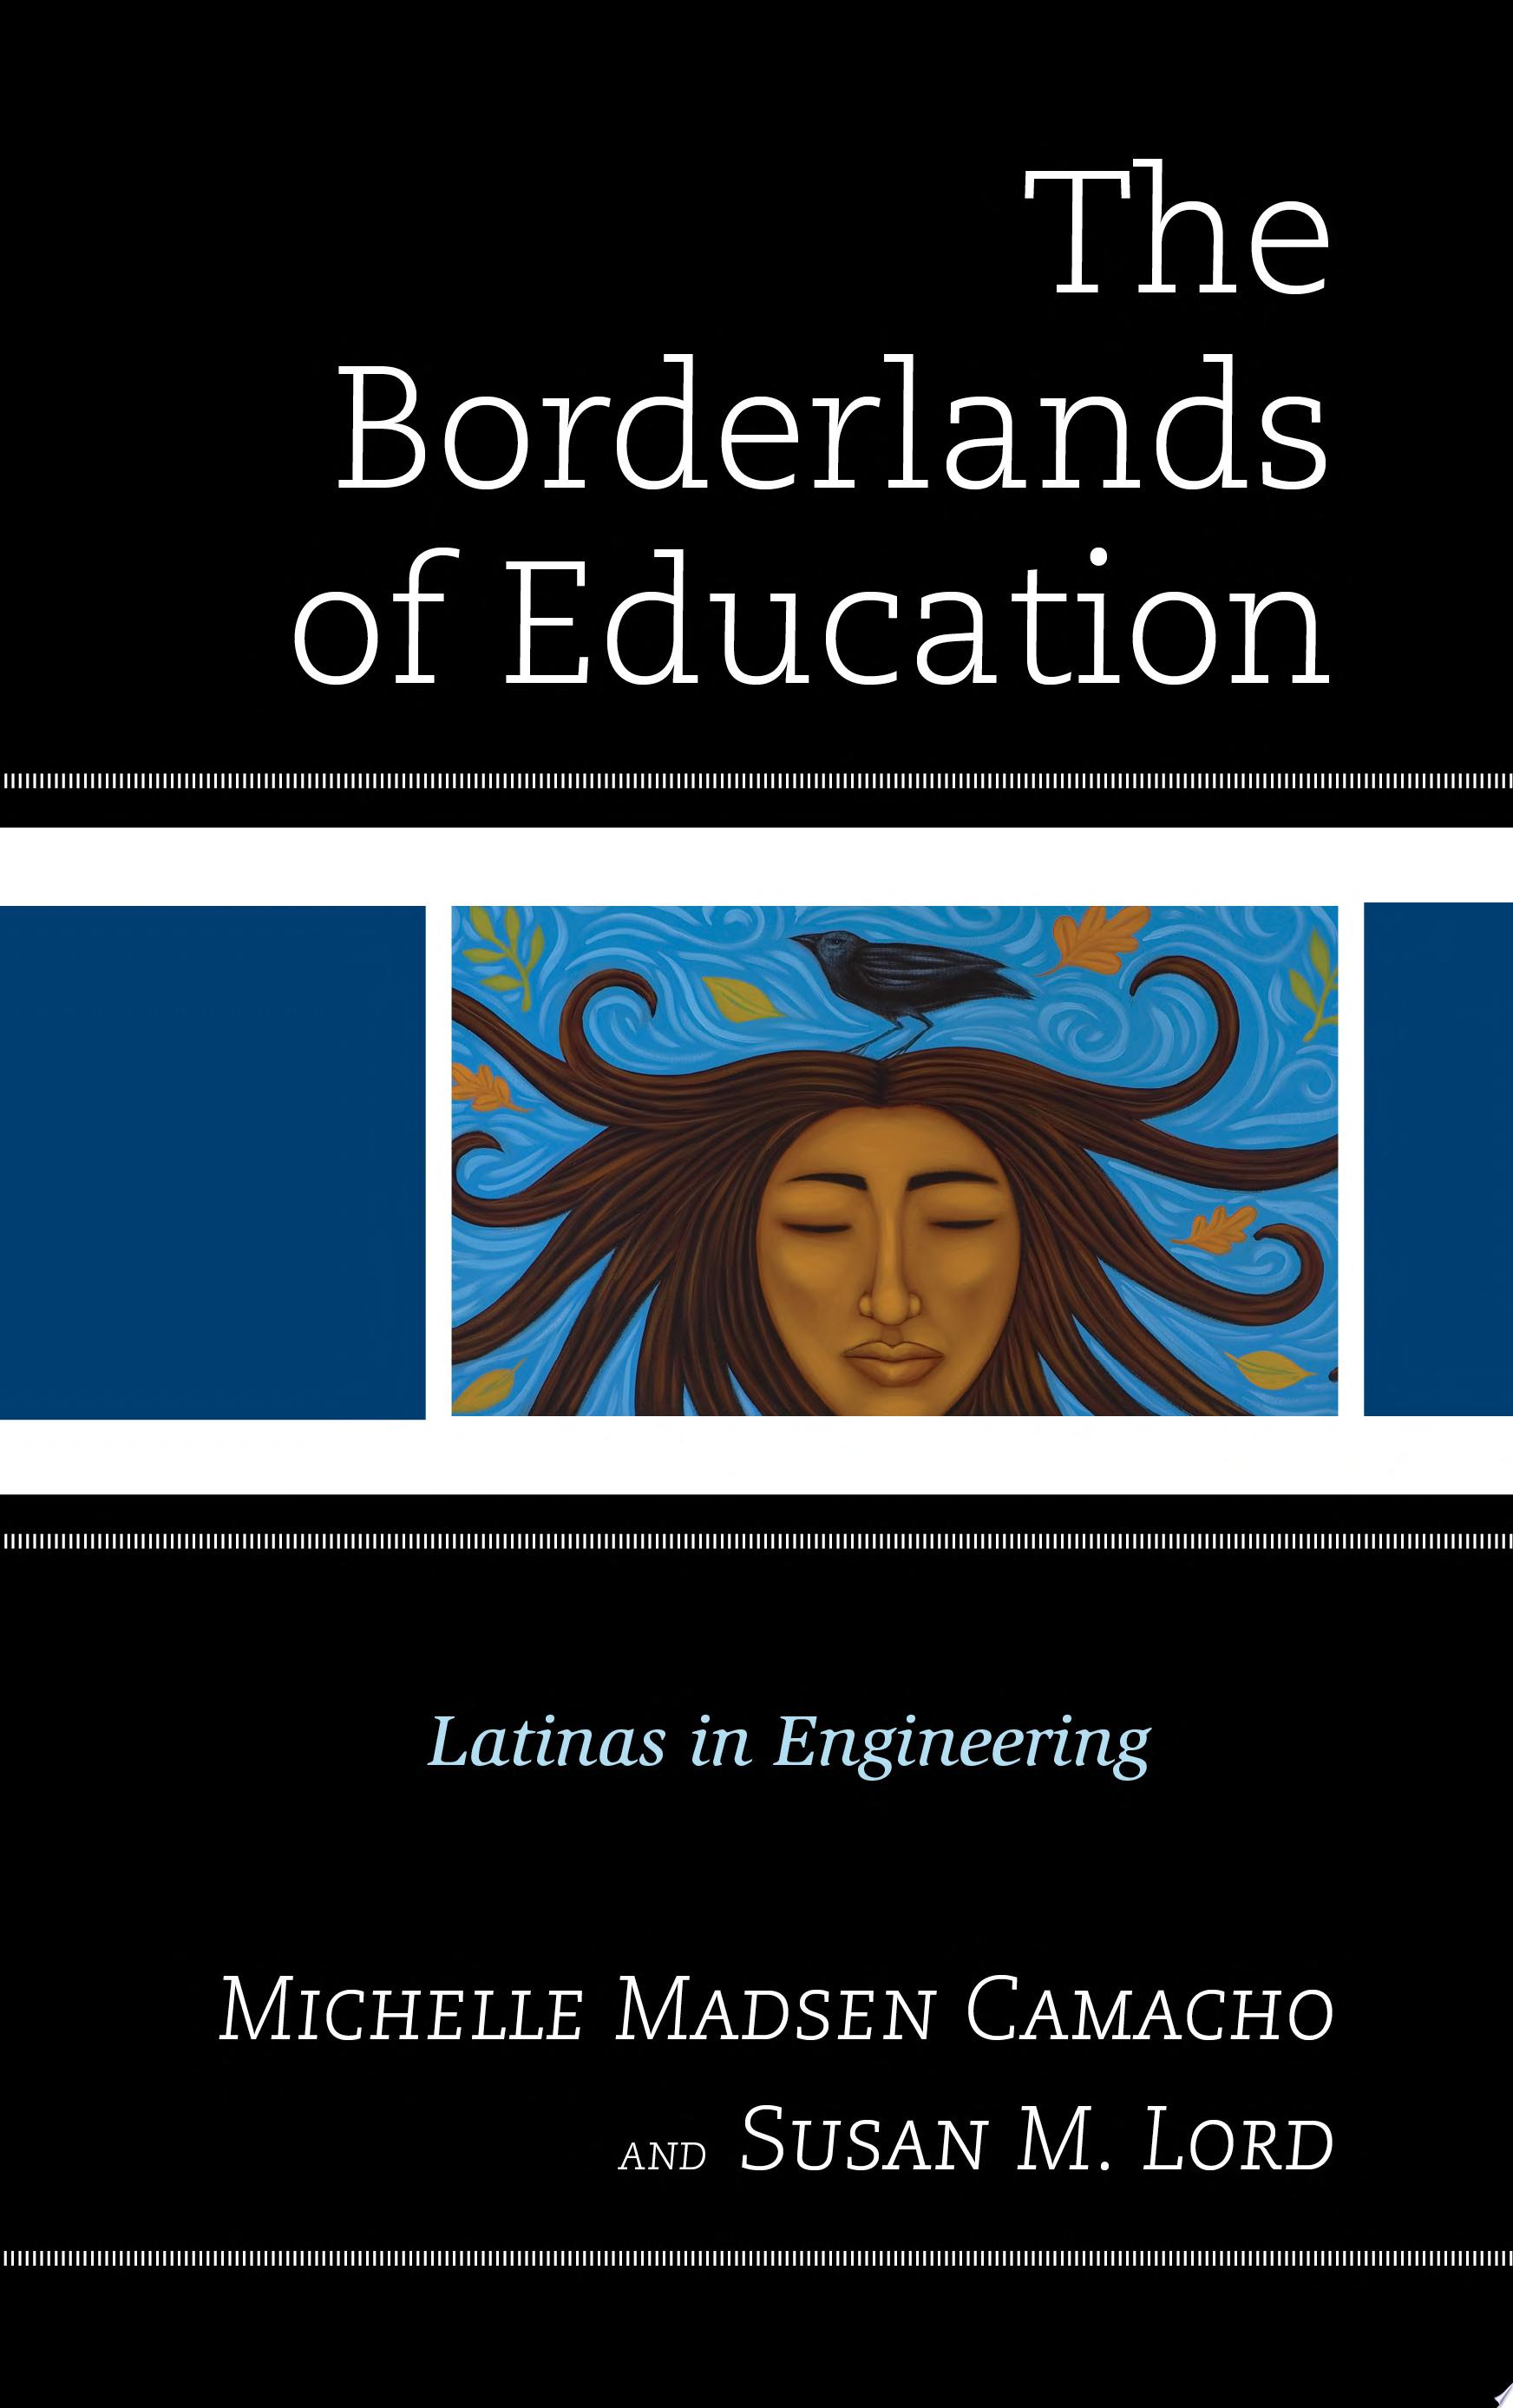 The Borderlands of Education